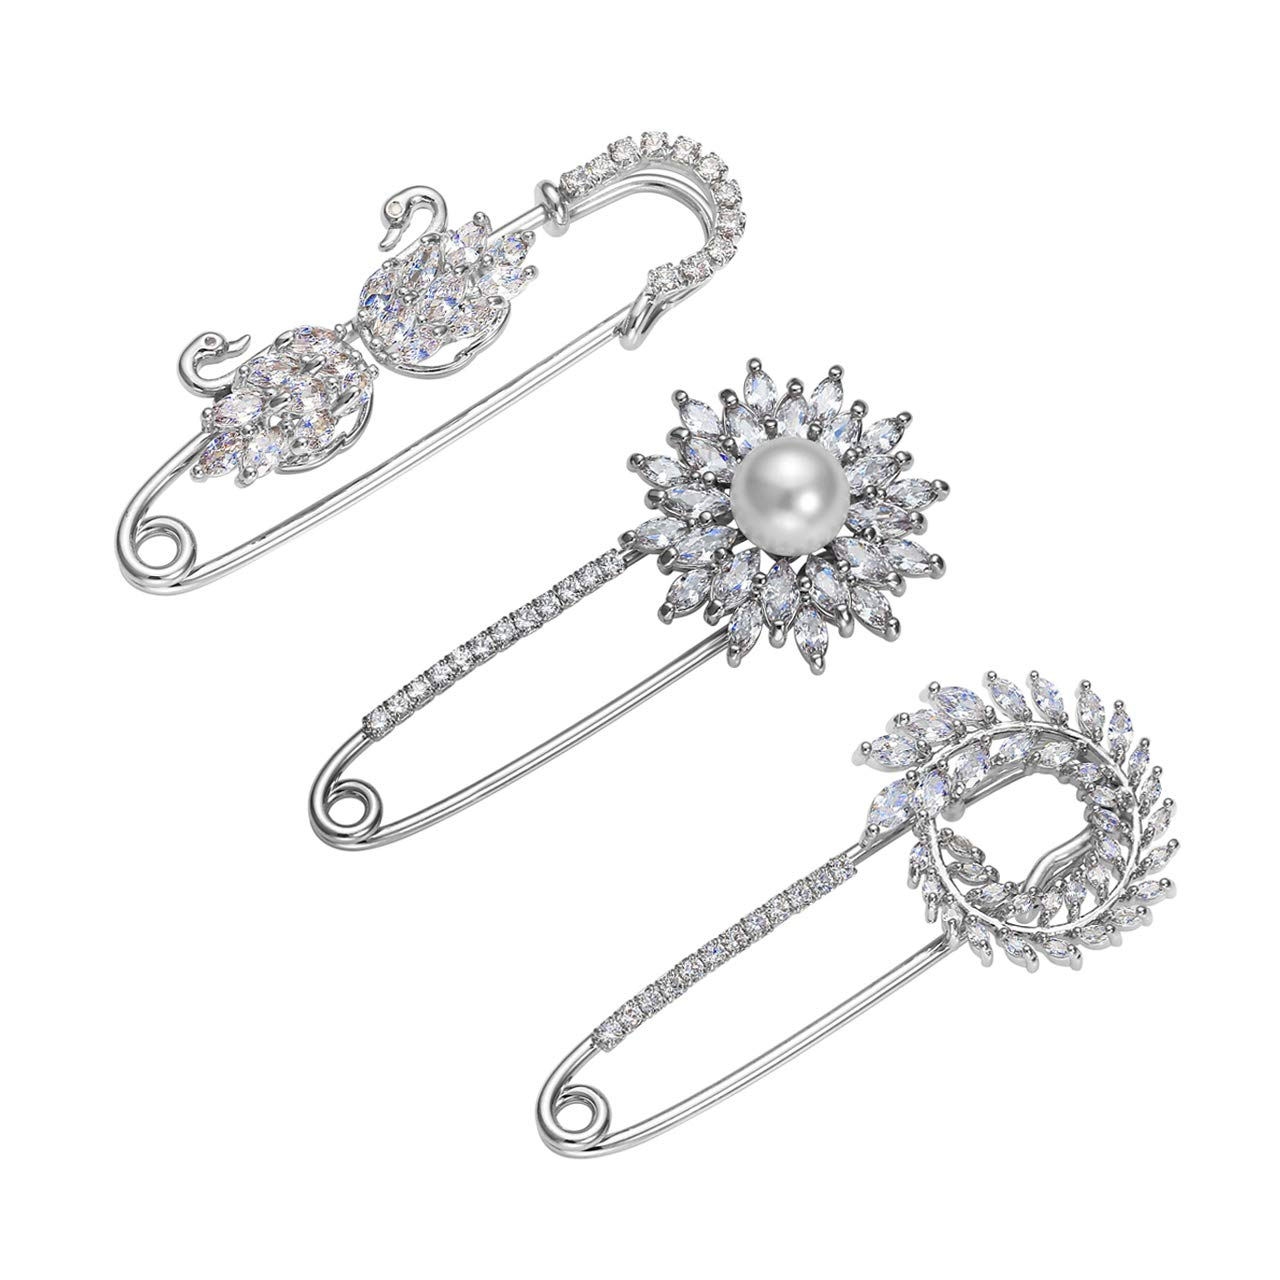 Jovivi 3pcs Clear Cubic Zirconia Crystal Floral Feather Safety Pin Brooches Suit Sweater Scarves Scarf Brooch Charm by Jovivi (Image #1)